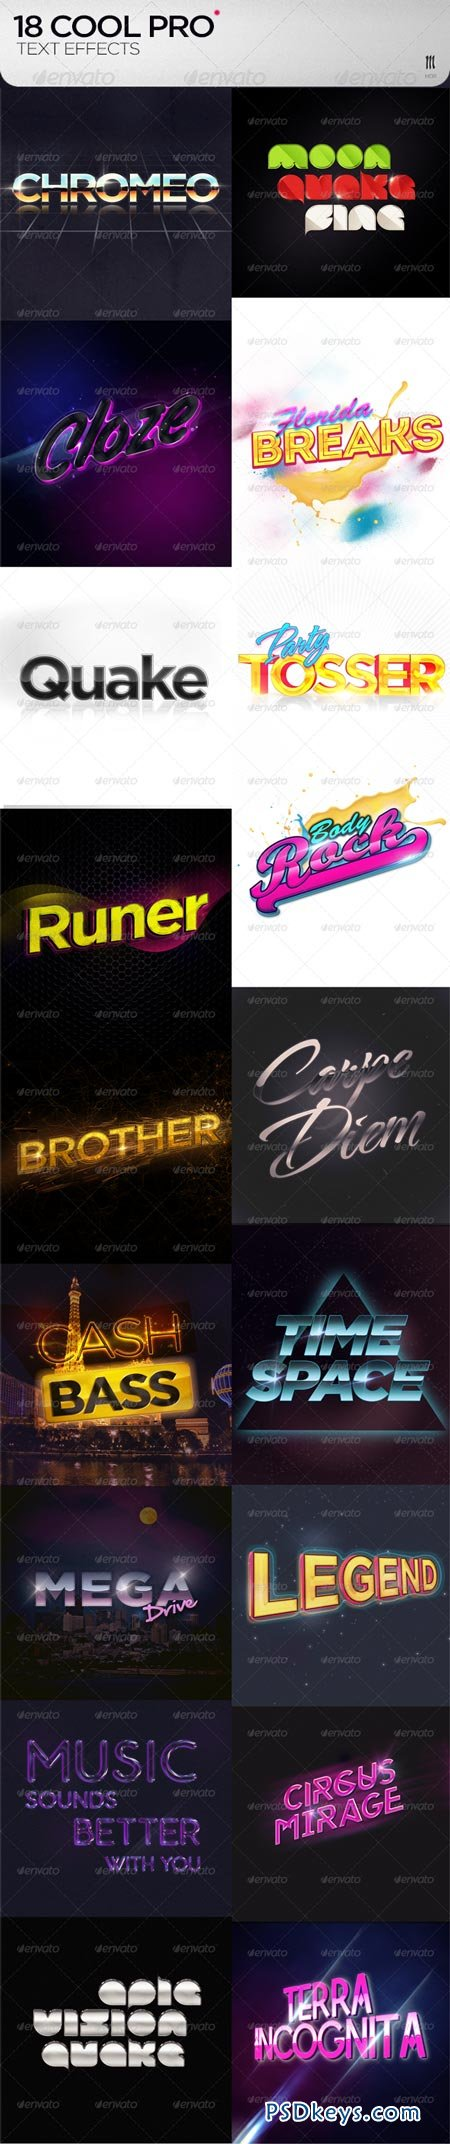 18 Cool PRO Text Effects + .PSD 8111597